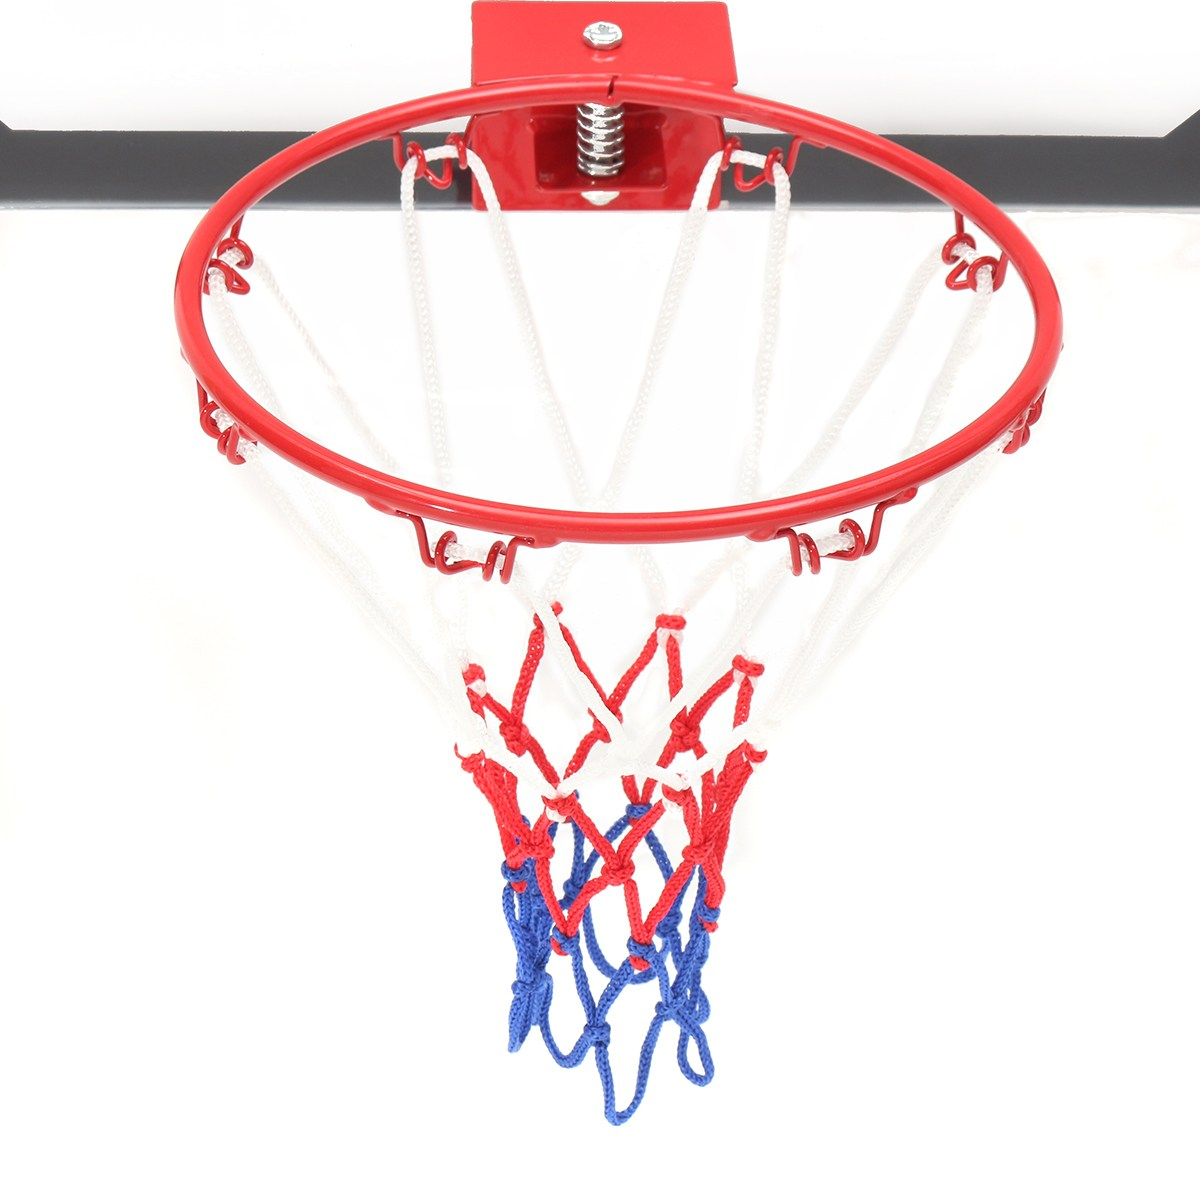 Indoor home train Adjustable Hanging Basketball Hoop Mini Basketball Board For Game Children Kids Game with ball and air pump<br>